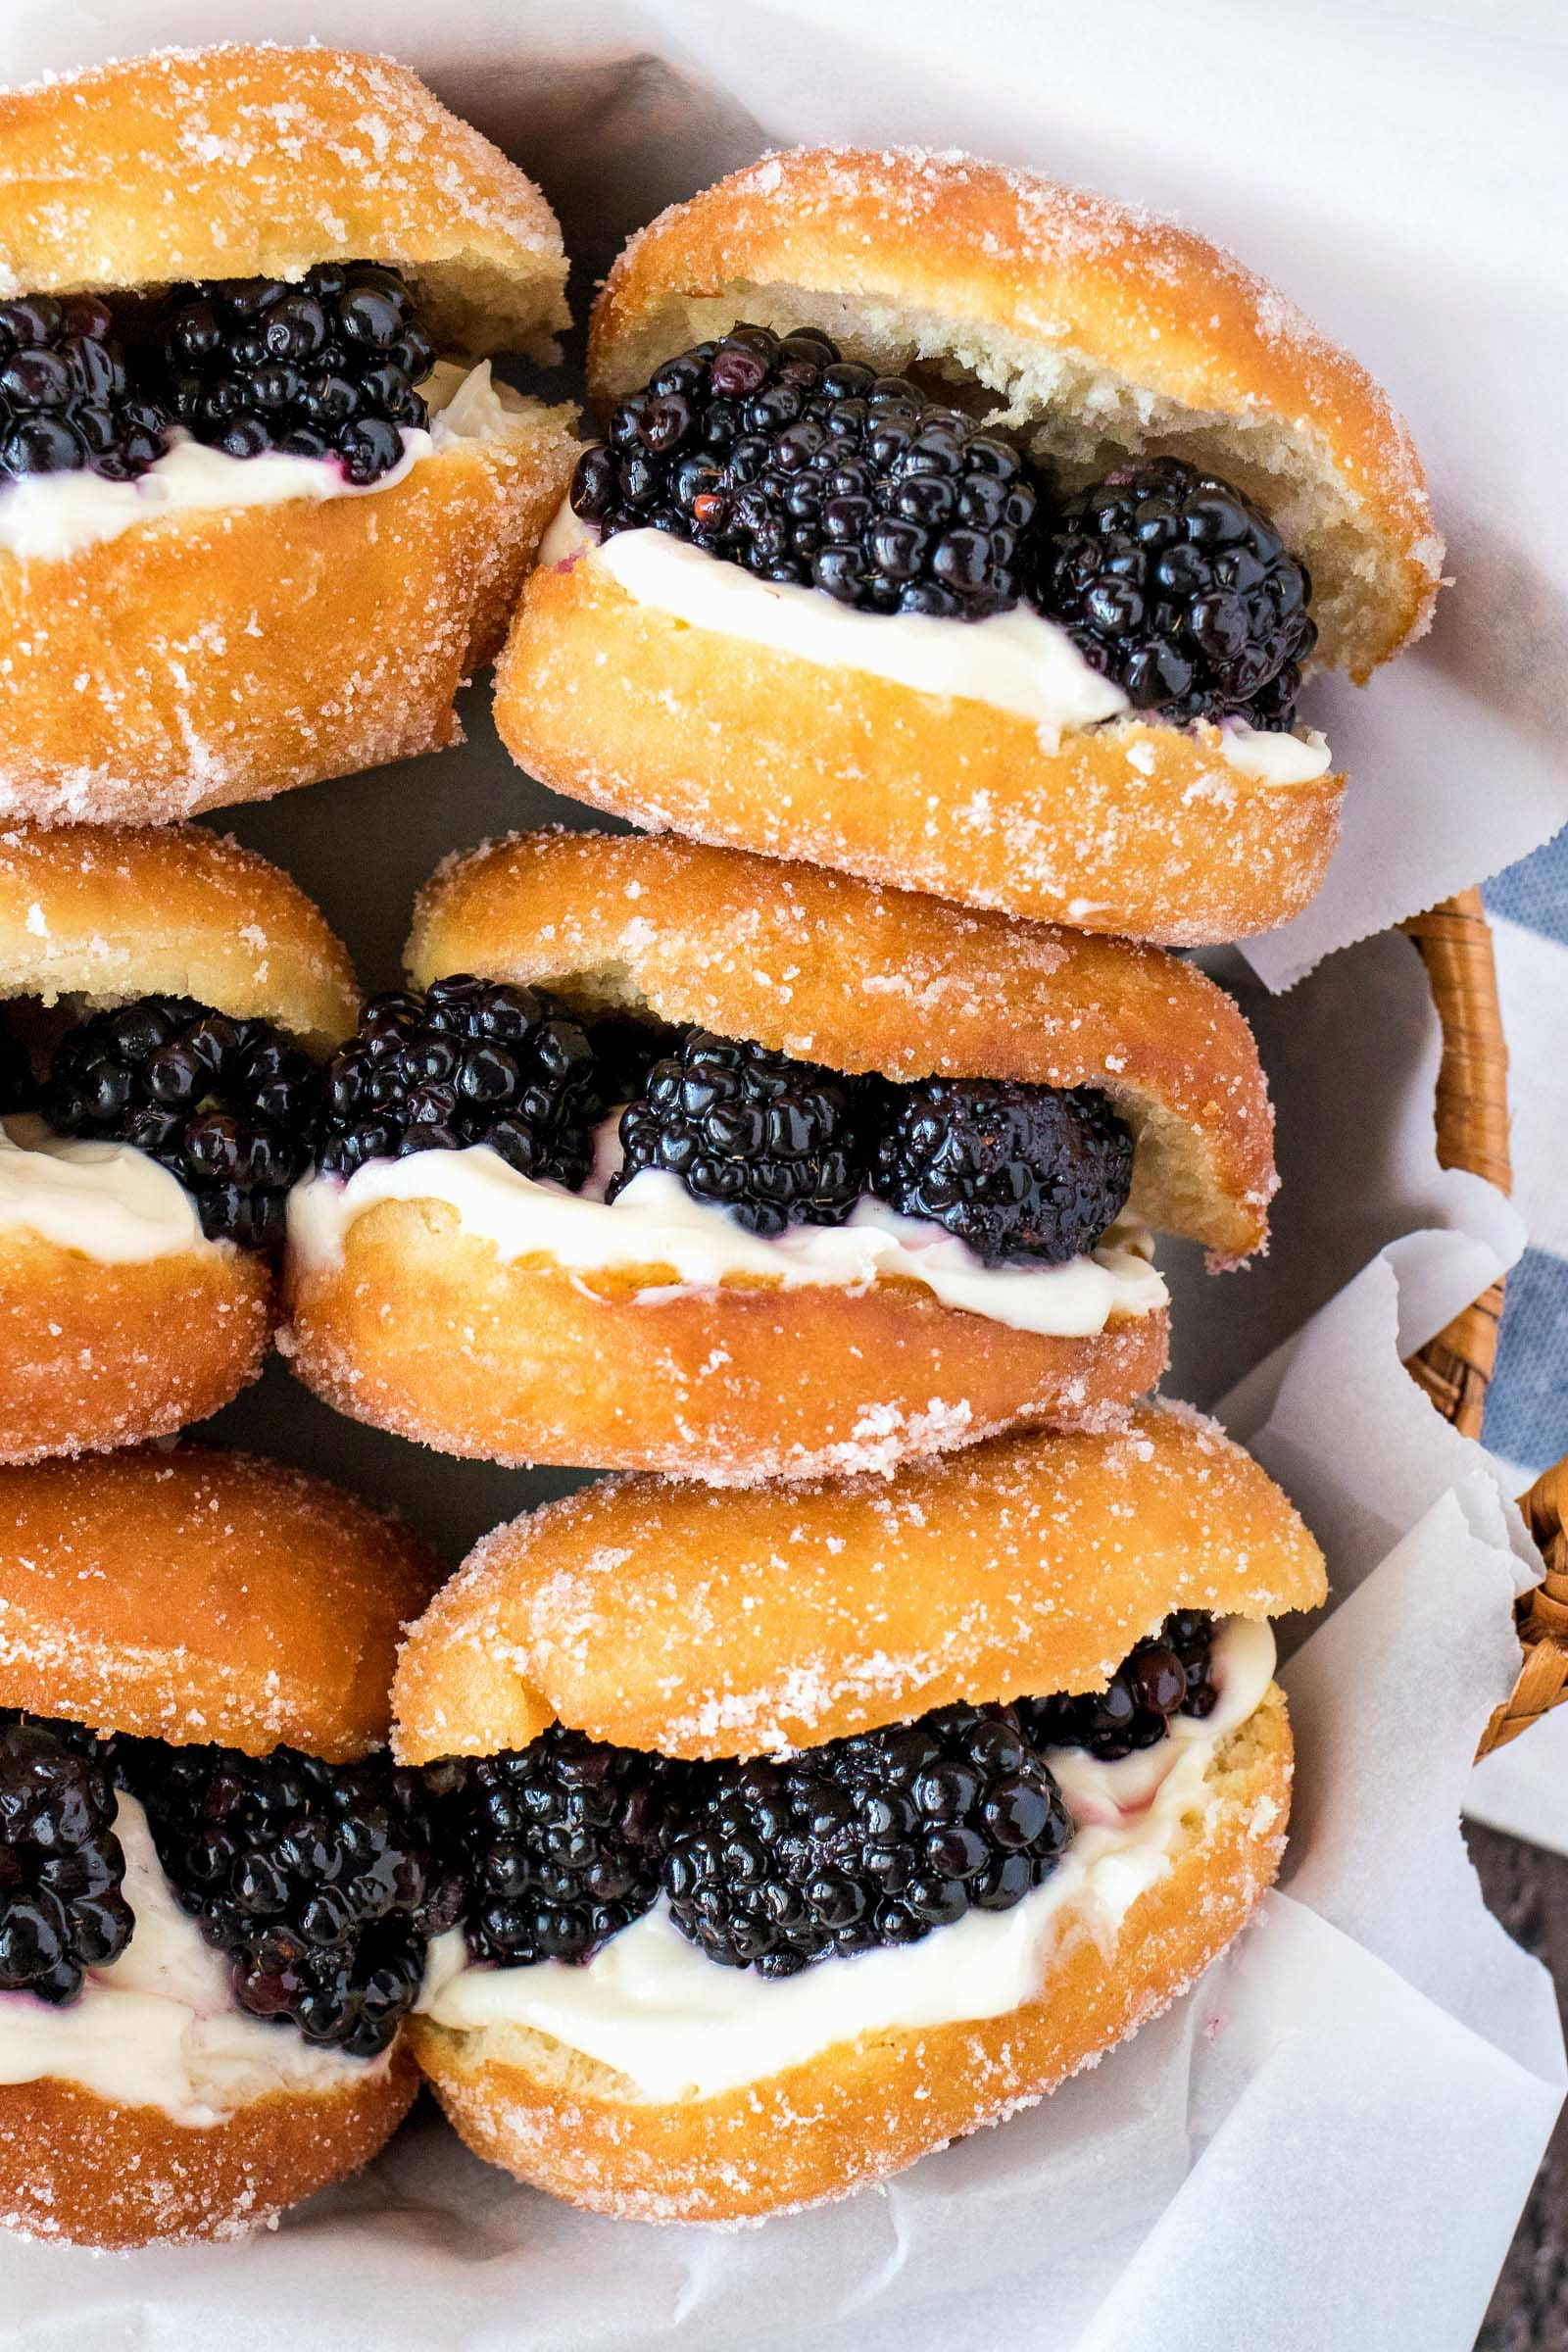 Blackberries & Cream Slider Doughnuts - Super fluffy yeast doughnuts that are tossed in sugar and then stuffed with a layer of cream cheese filling and topped with juicy blackberries. The perfect treat for any breakfast or brunch!